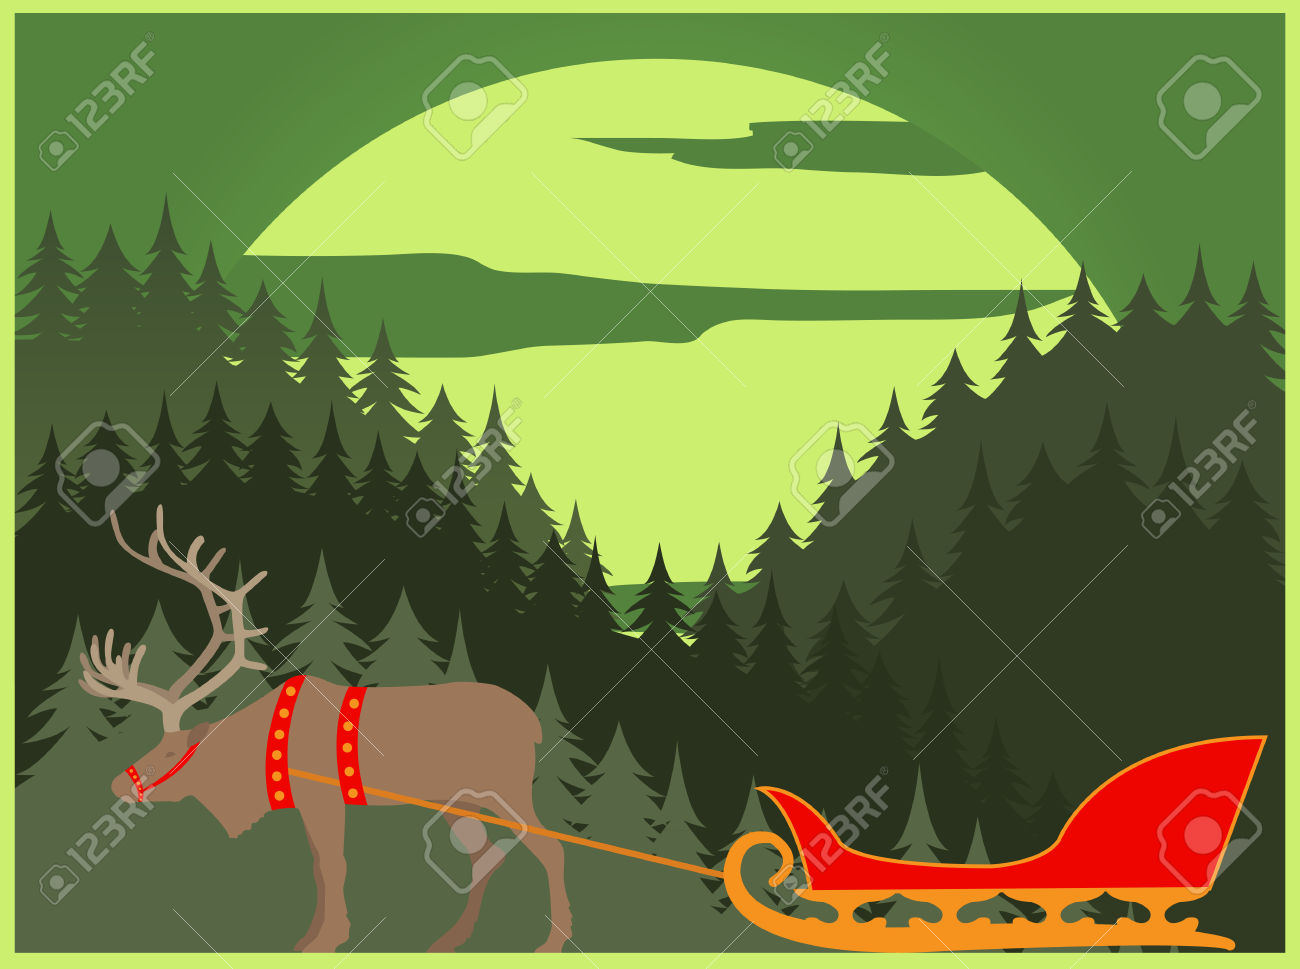 City Buildings Graphic Template. Lapland. Vector Illustration.